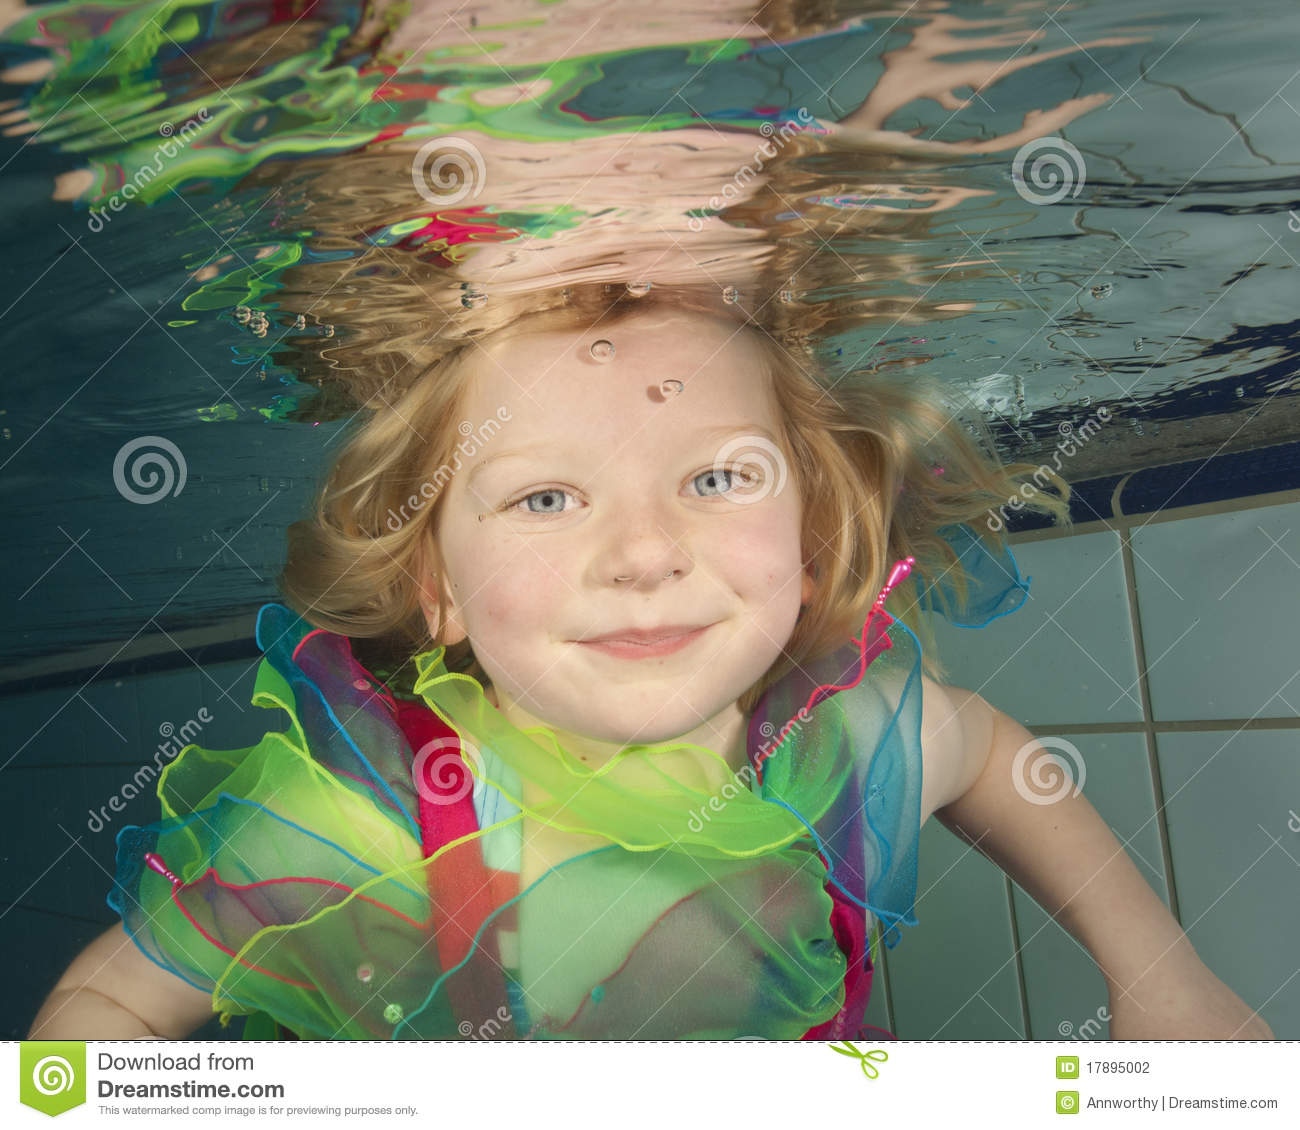 Little Girl Swimming Underwater Stock Photography - Image ...: https://www.dreamstime.com/stock-photography-little-girl-swimming-underwater-image17895002